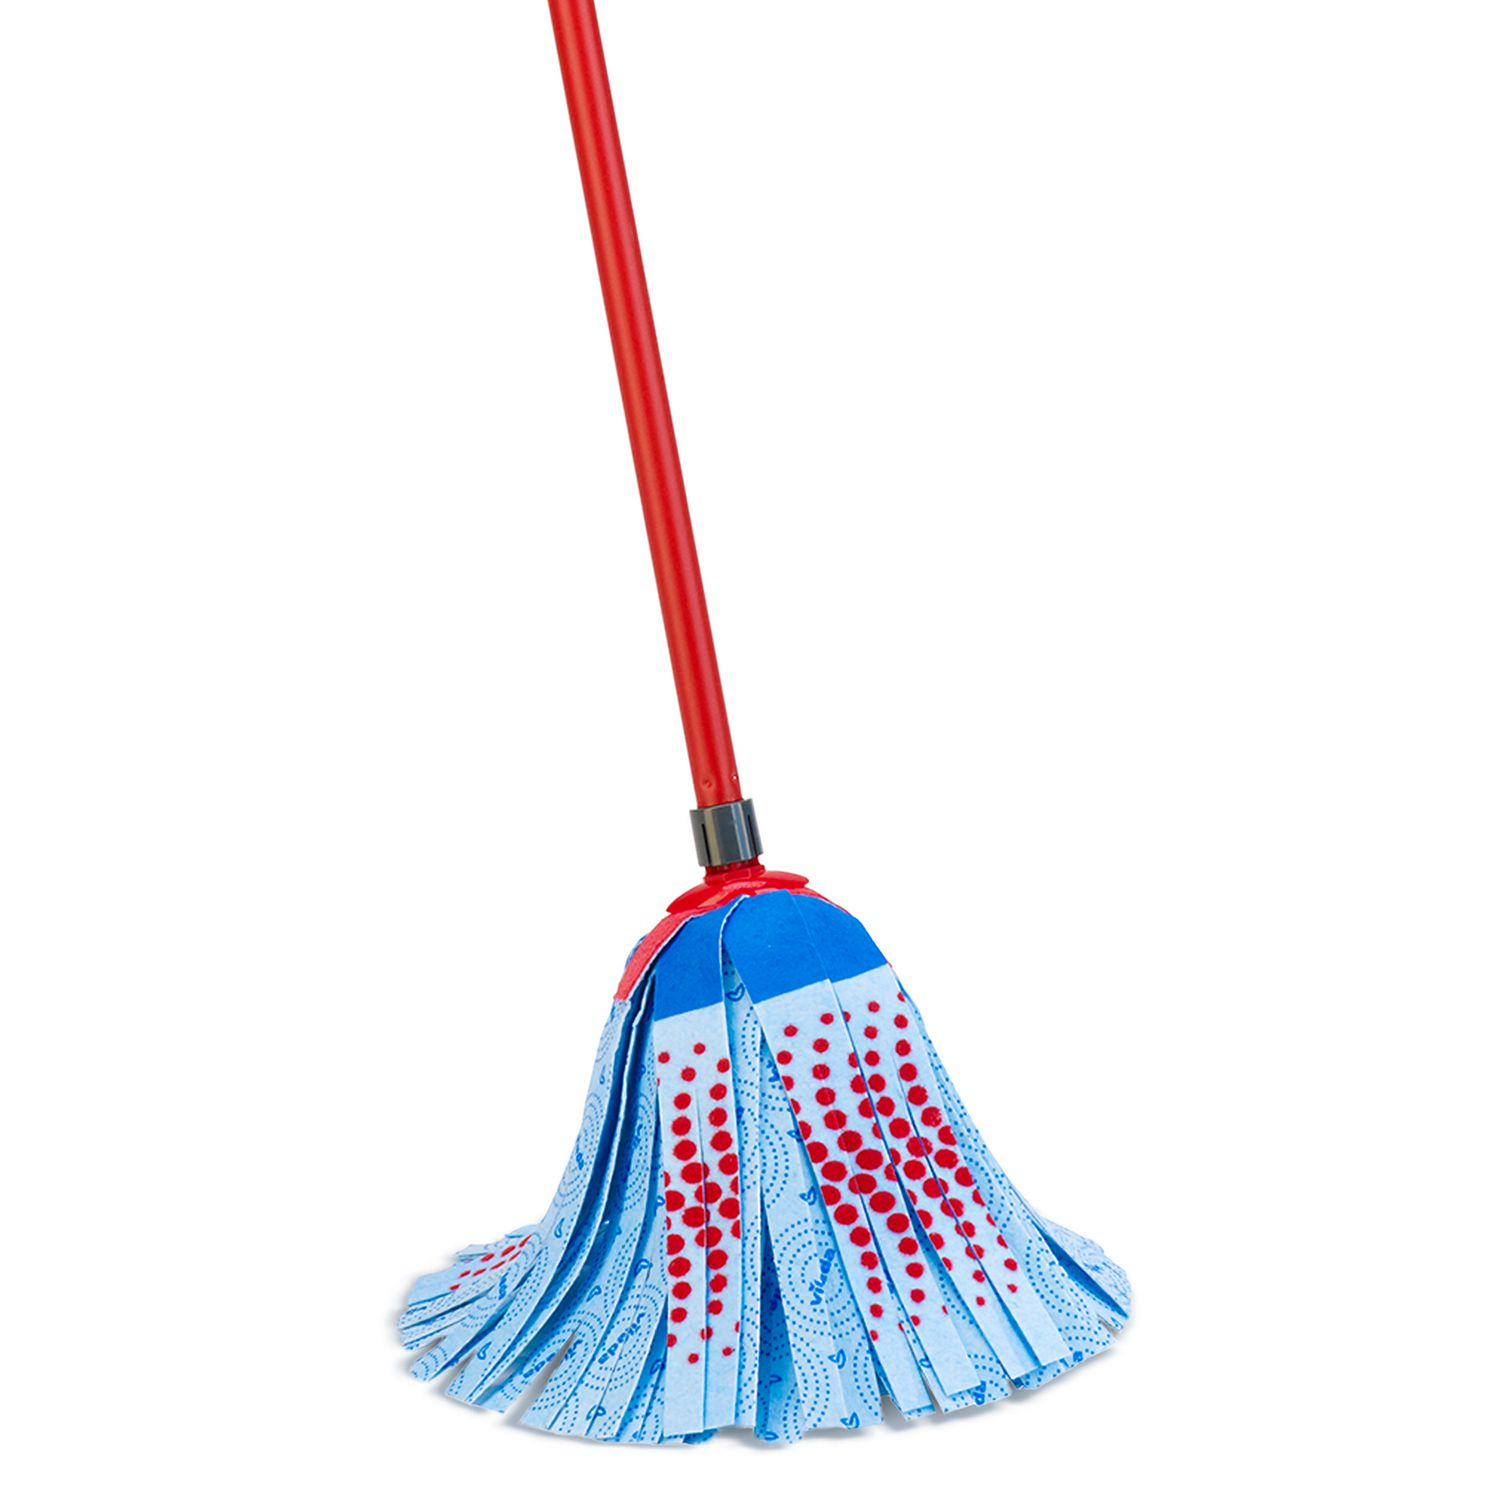 Hardwood Floor Mop Walmart Bona Cleaner